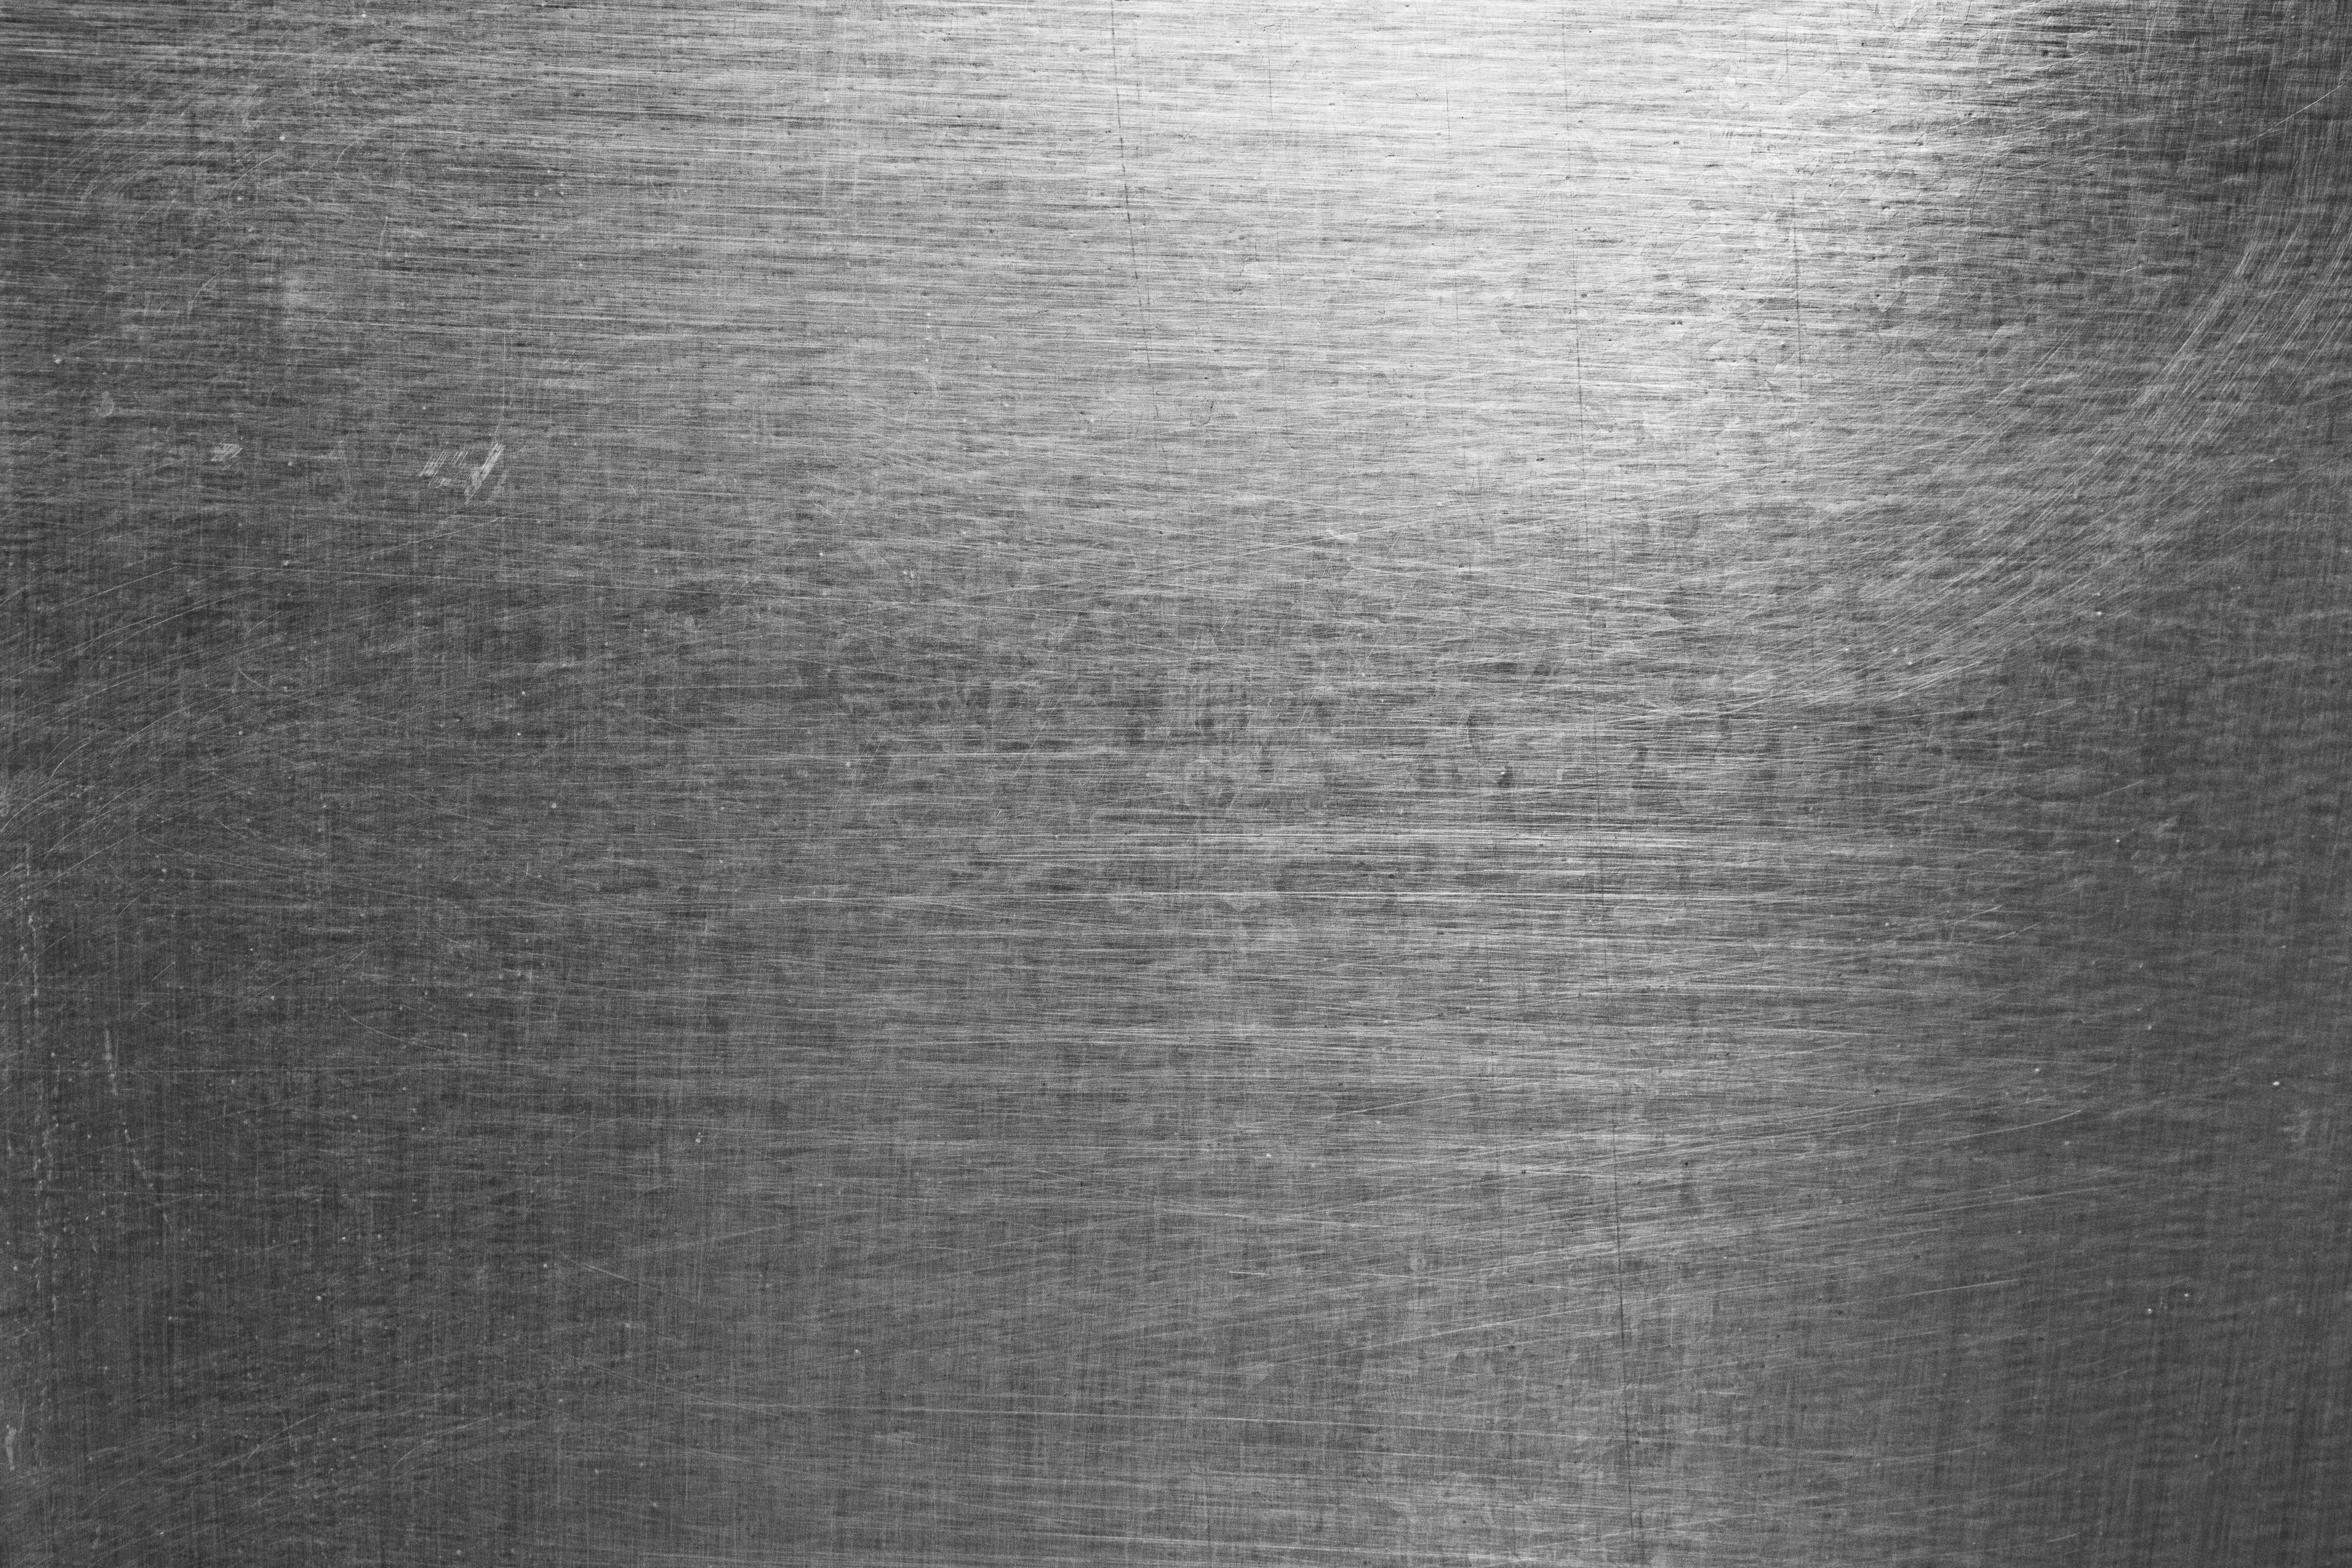 metallic texture wildtextures metal sheet scratched brushed